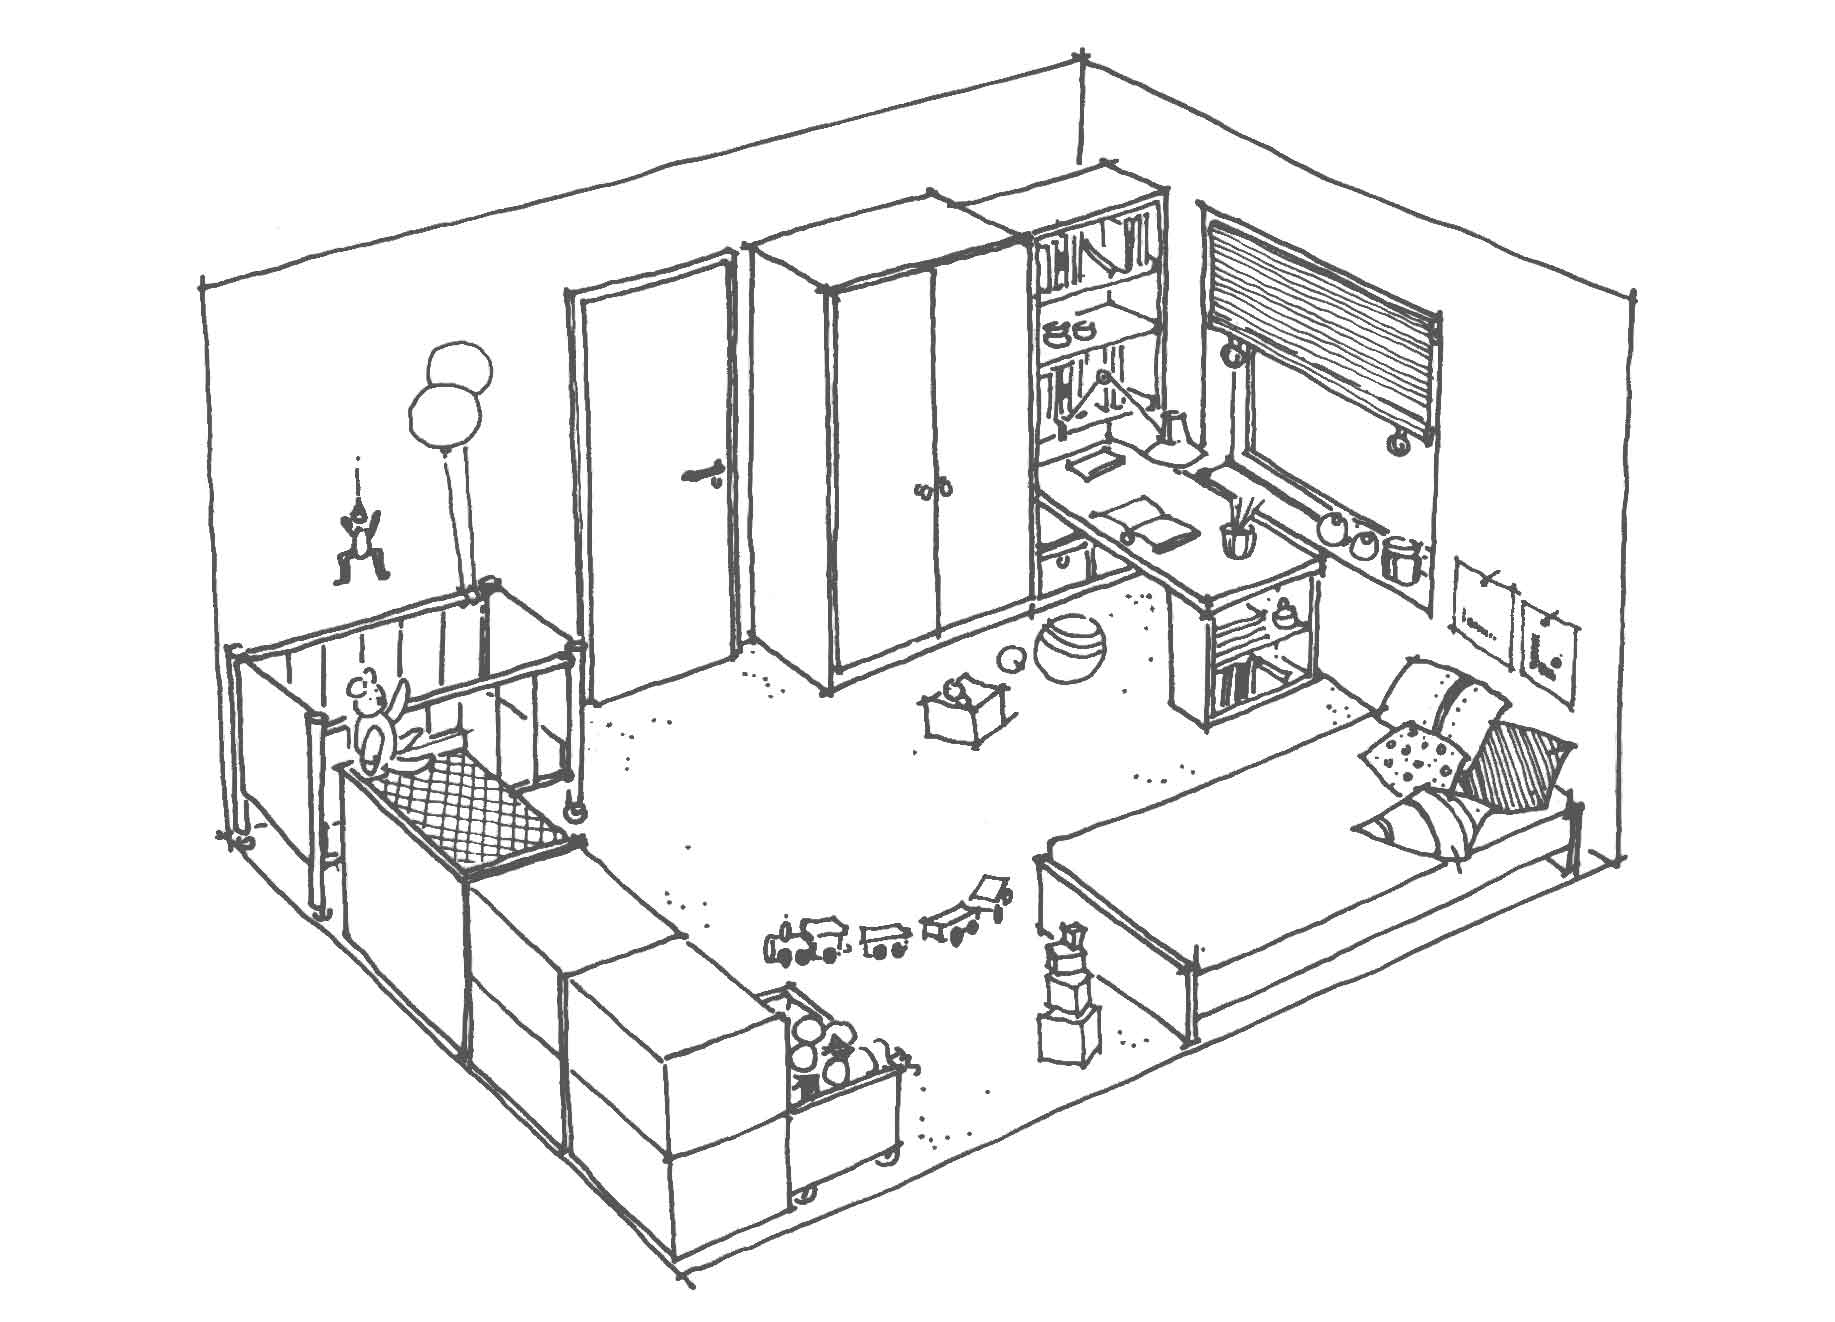 3 Child's Bedroom Floor Plan Ideas With Dimensions | Roy Home Design